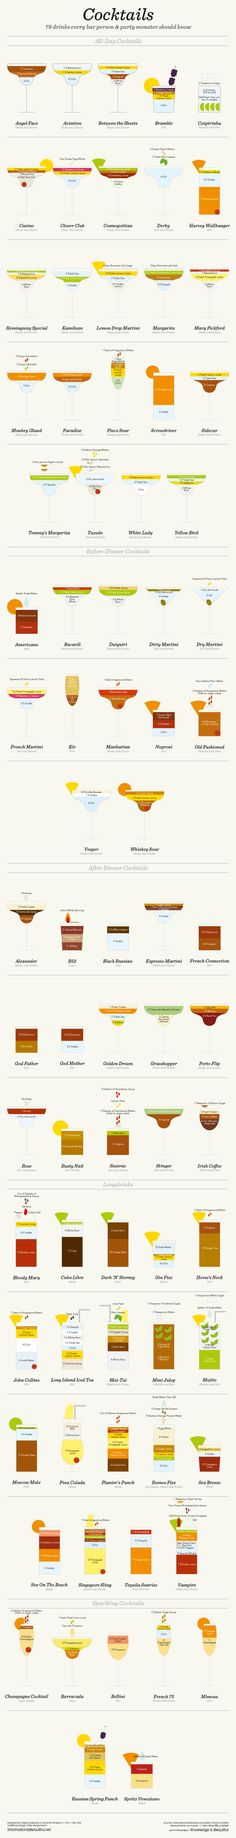 You don't have to be a bartender or a mixologist to pour a decent cocktail. You do, however, need to know what goes into it. This cheat sheet shows you how much of which ingredients to put in over 75 different, delicious cocktails.